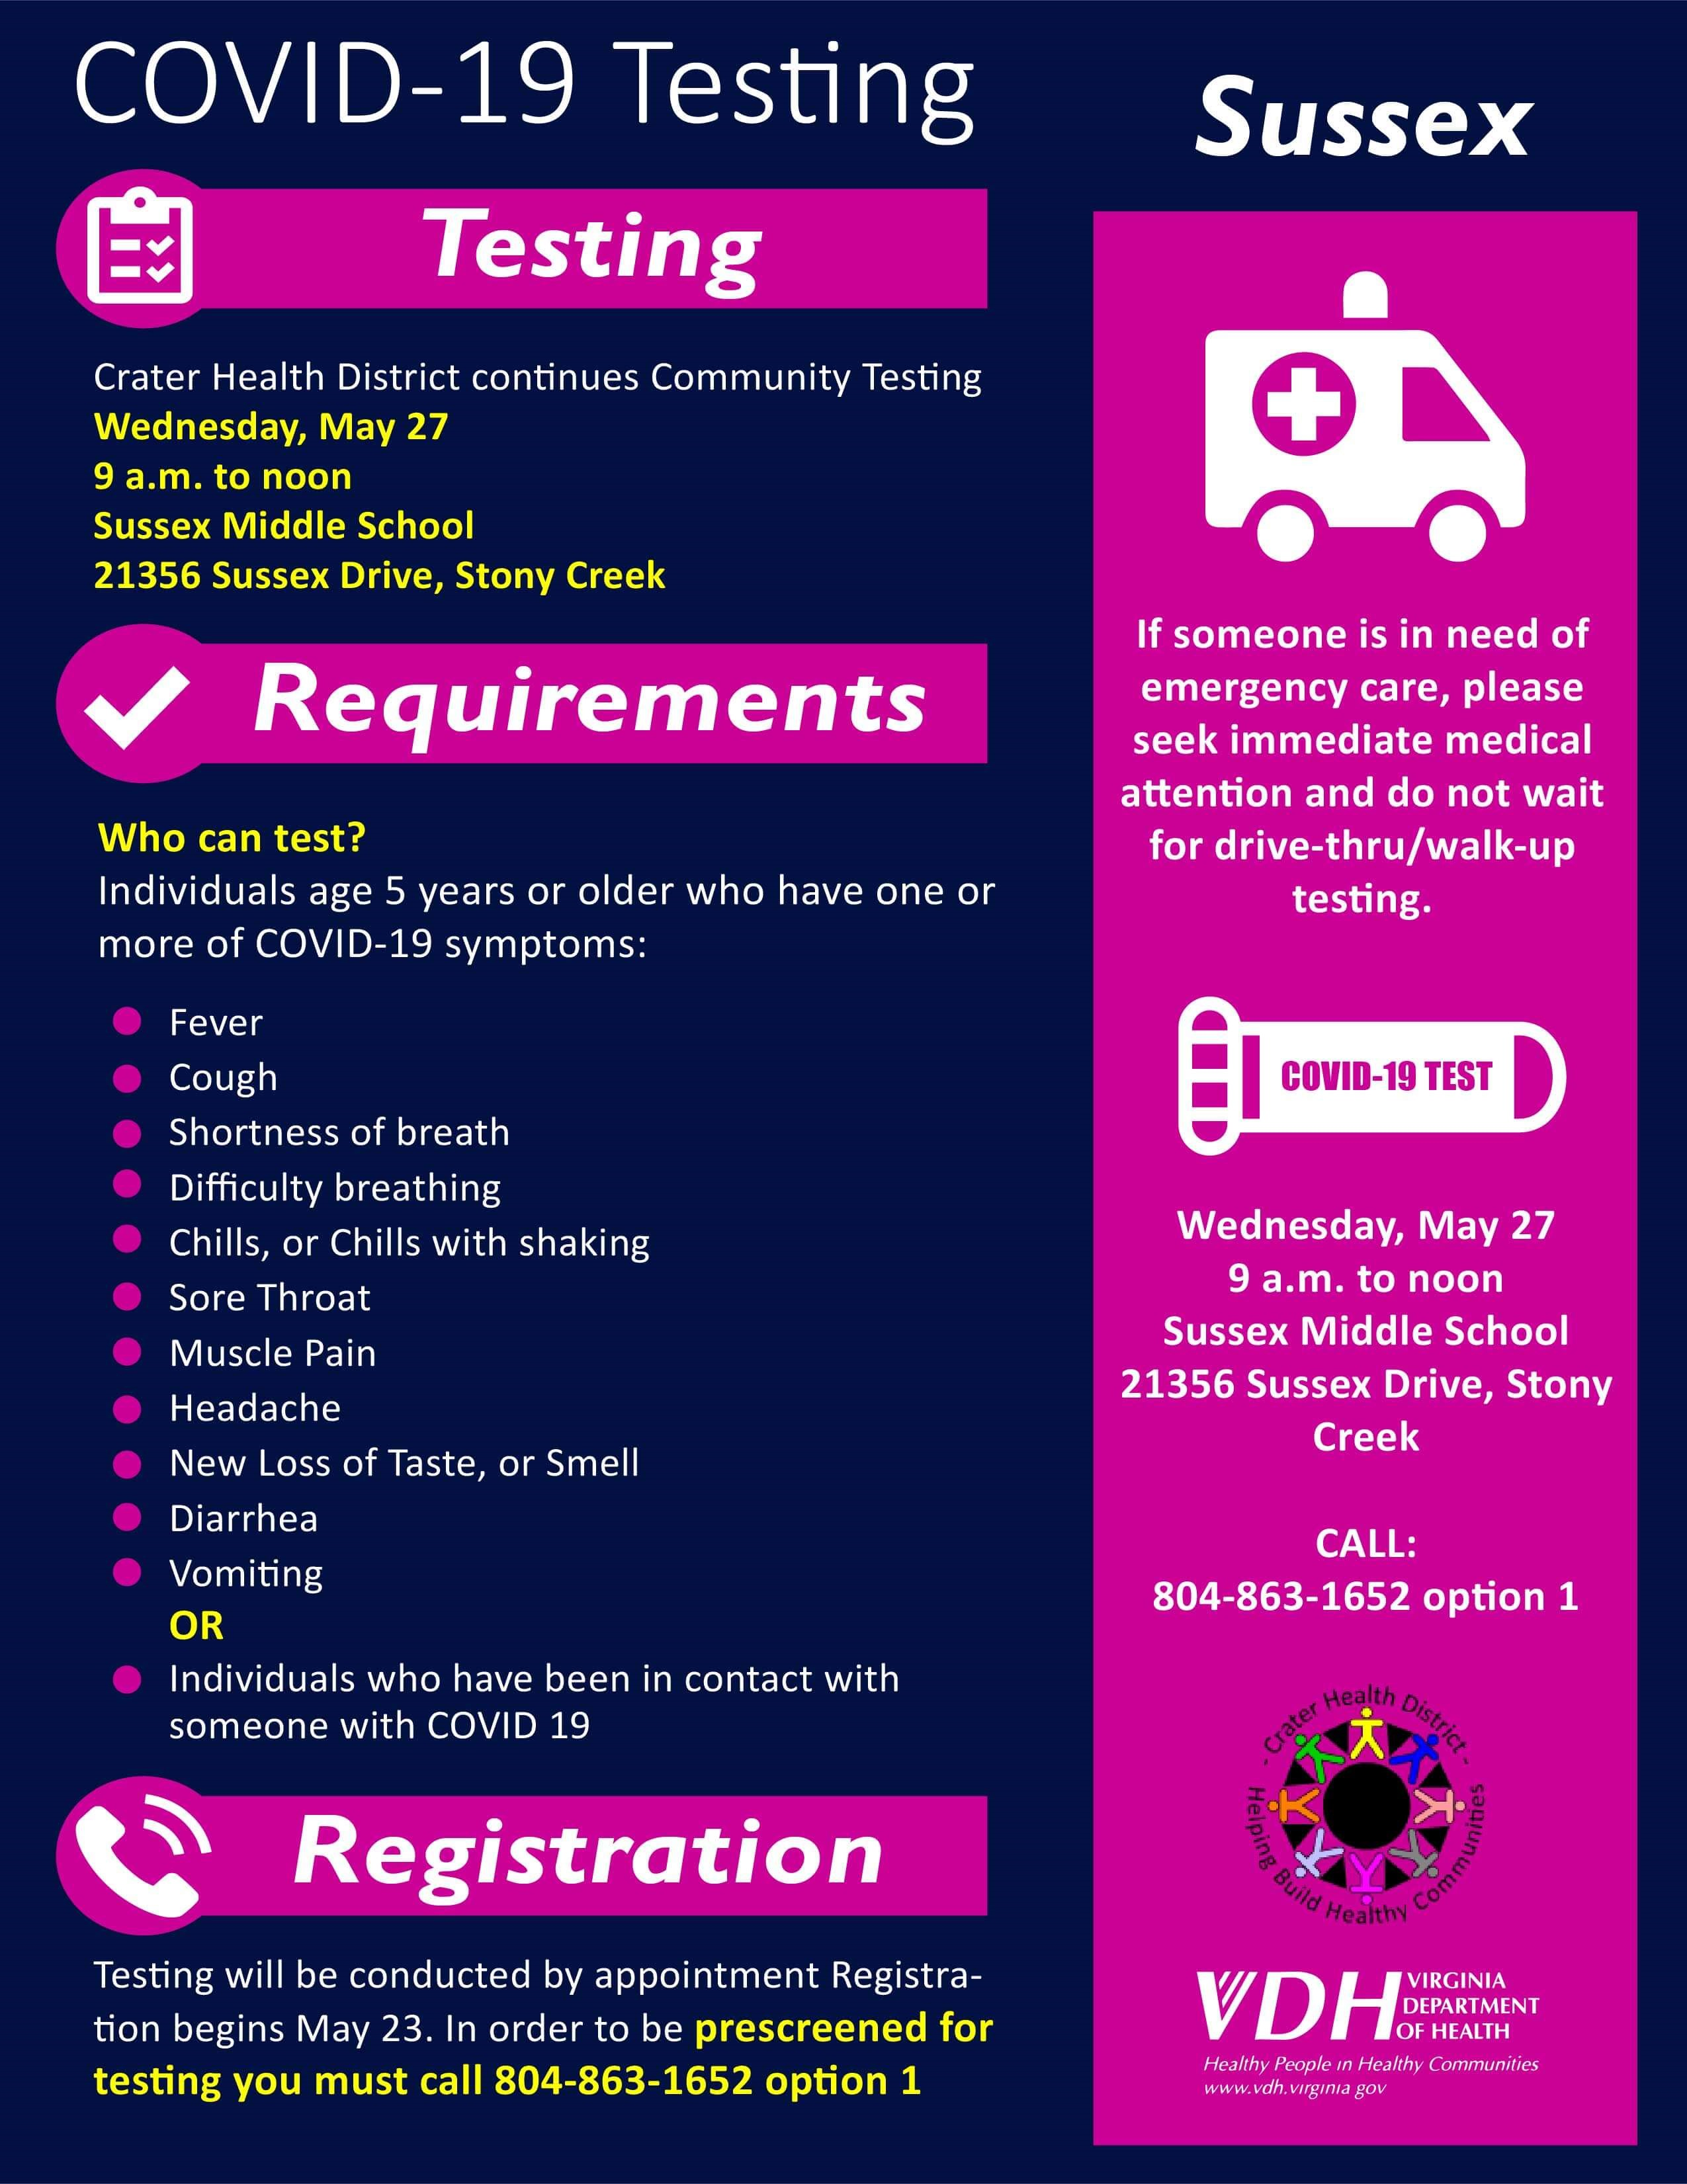 Infographic of Sussex Community Testing for COVID-19